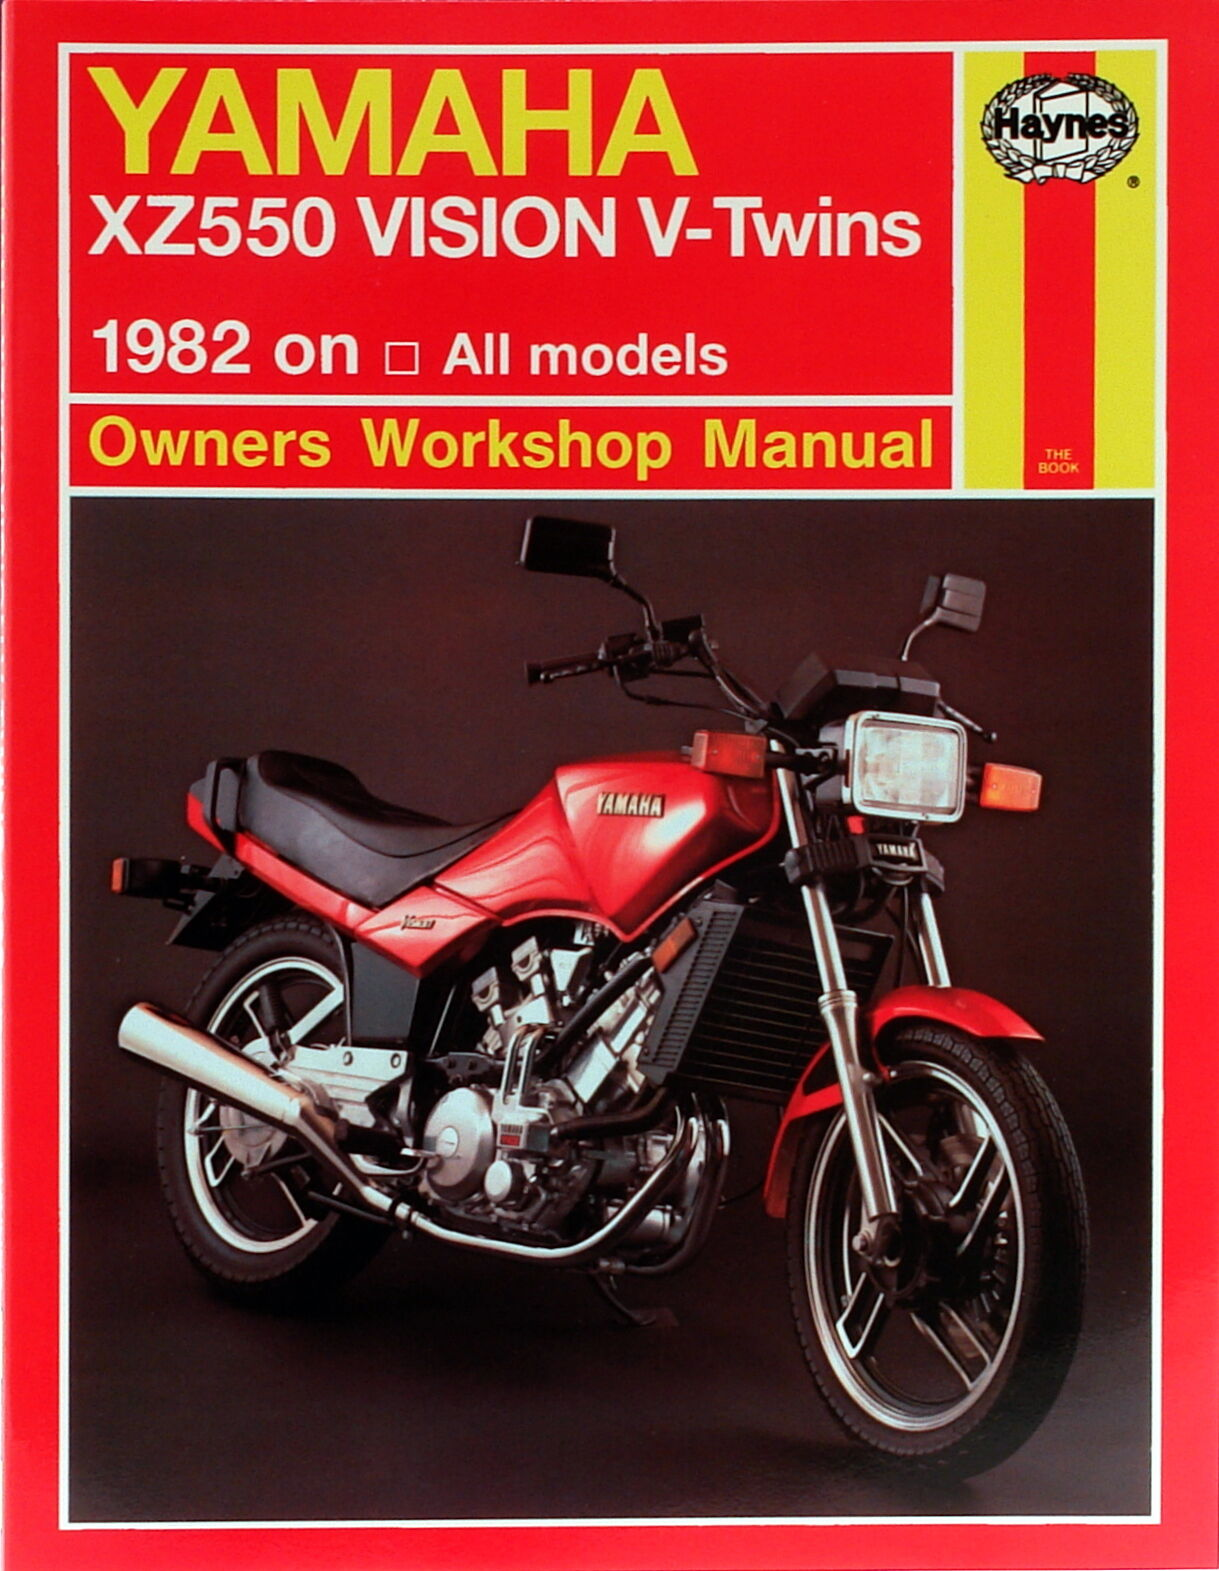 Haynes Manual 0821 - Yamaha XZ550 Vision V-Twins (82 - 85) workshop 1 of  1FREE Shipping ...